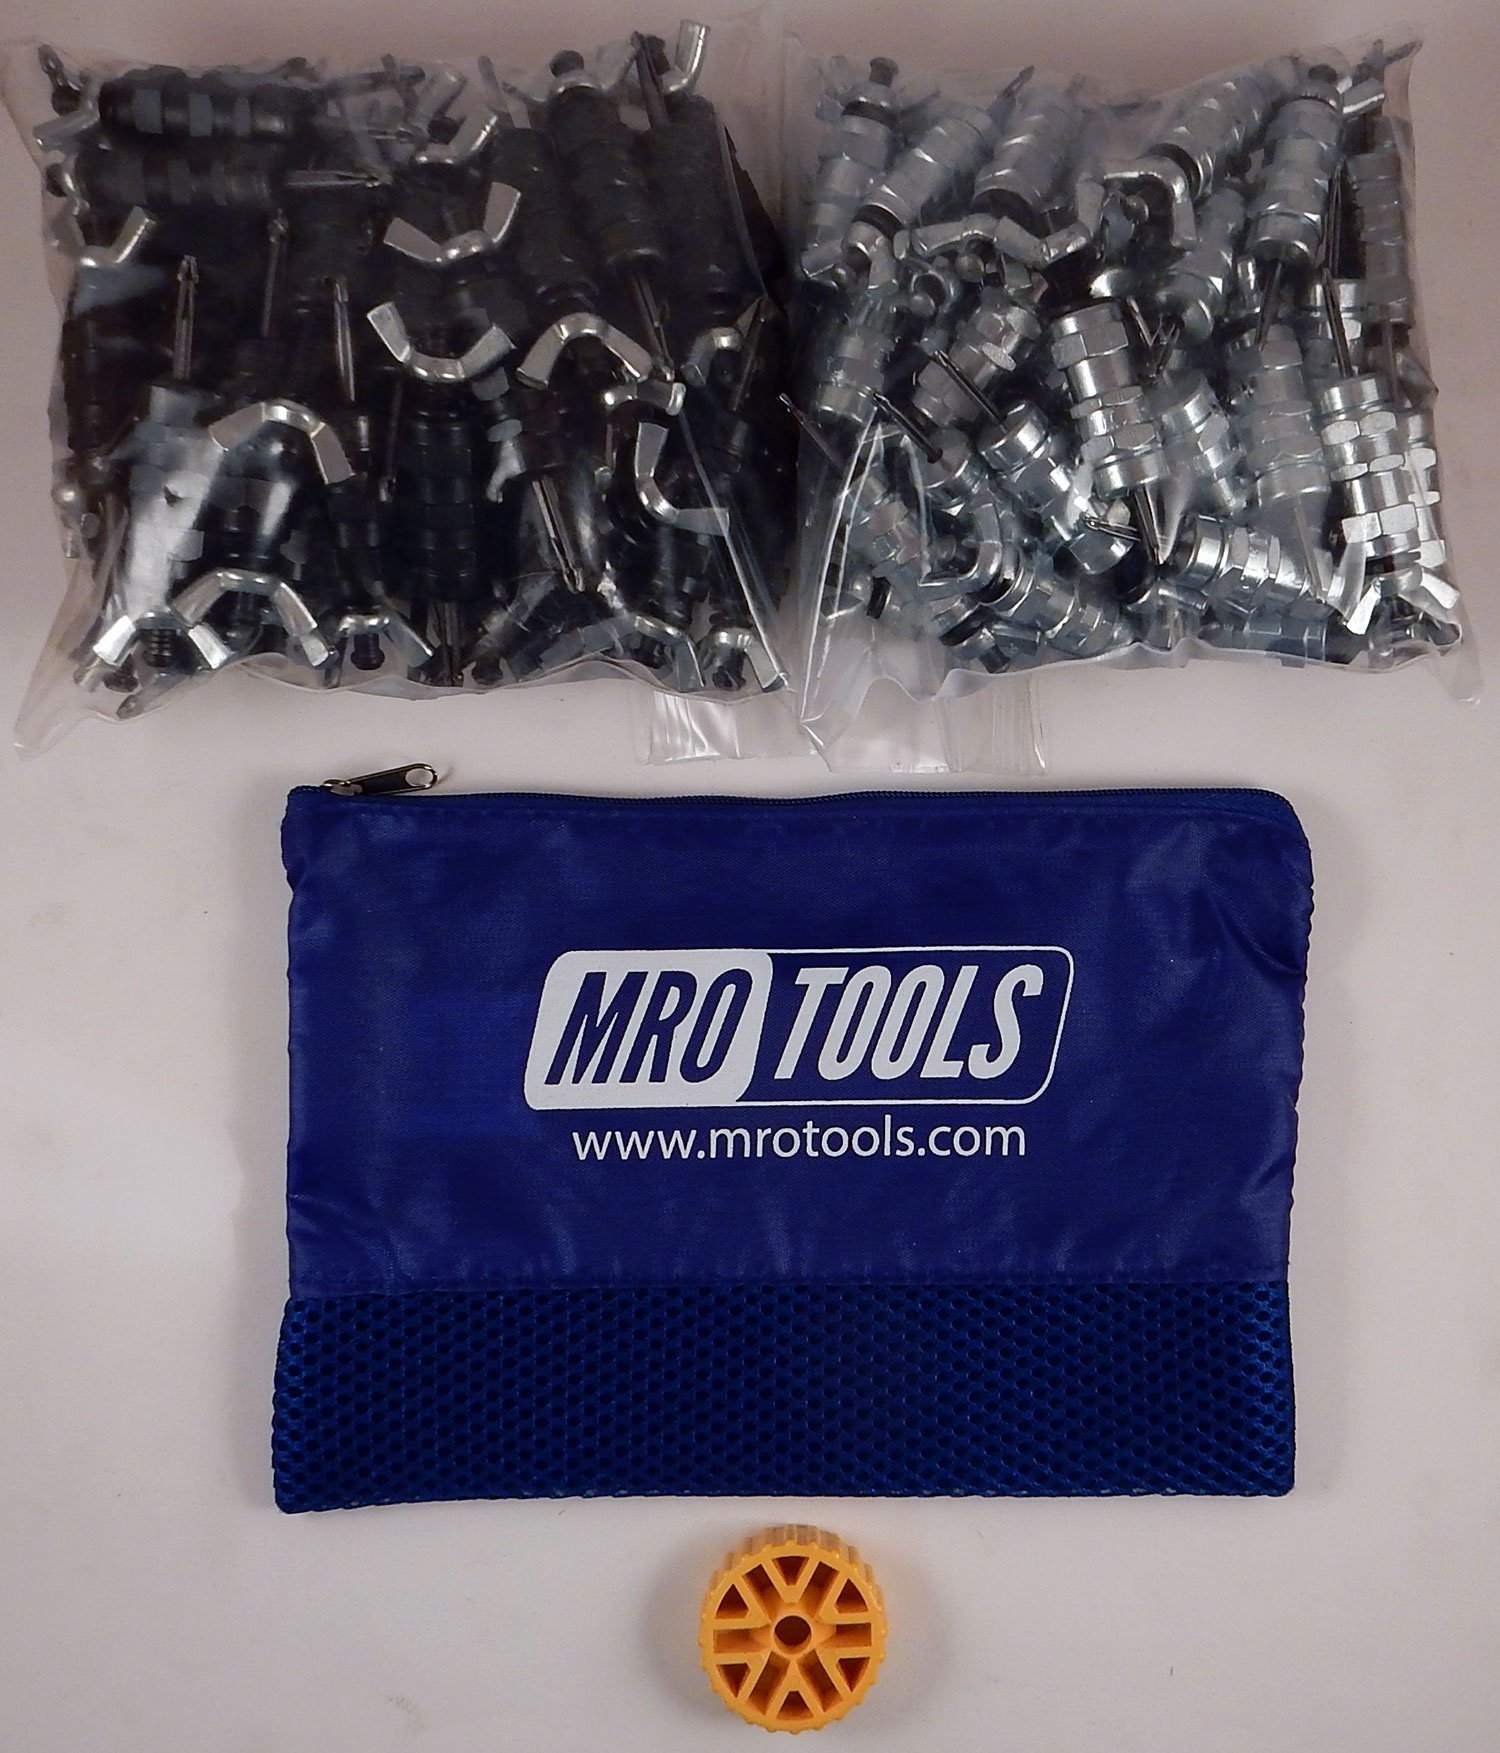 50 5/32 & 50 3/32 Standard Wing-Nut Cleco Fastener HBHT Tool & Bag (KWN4S100-6)